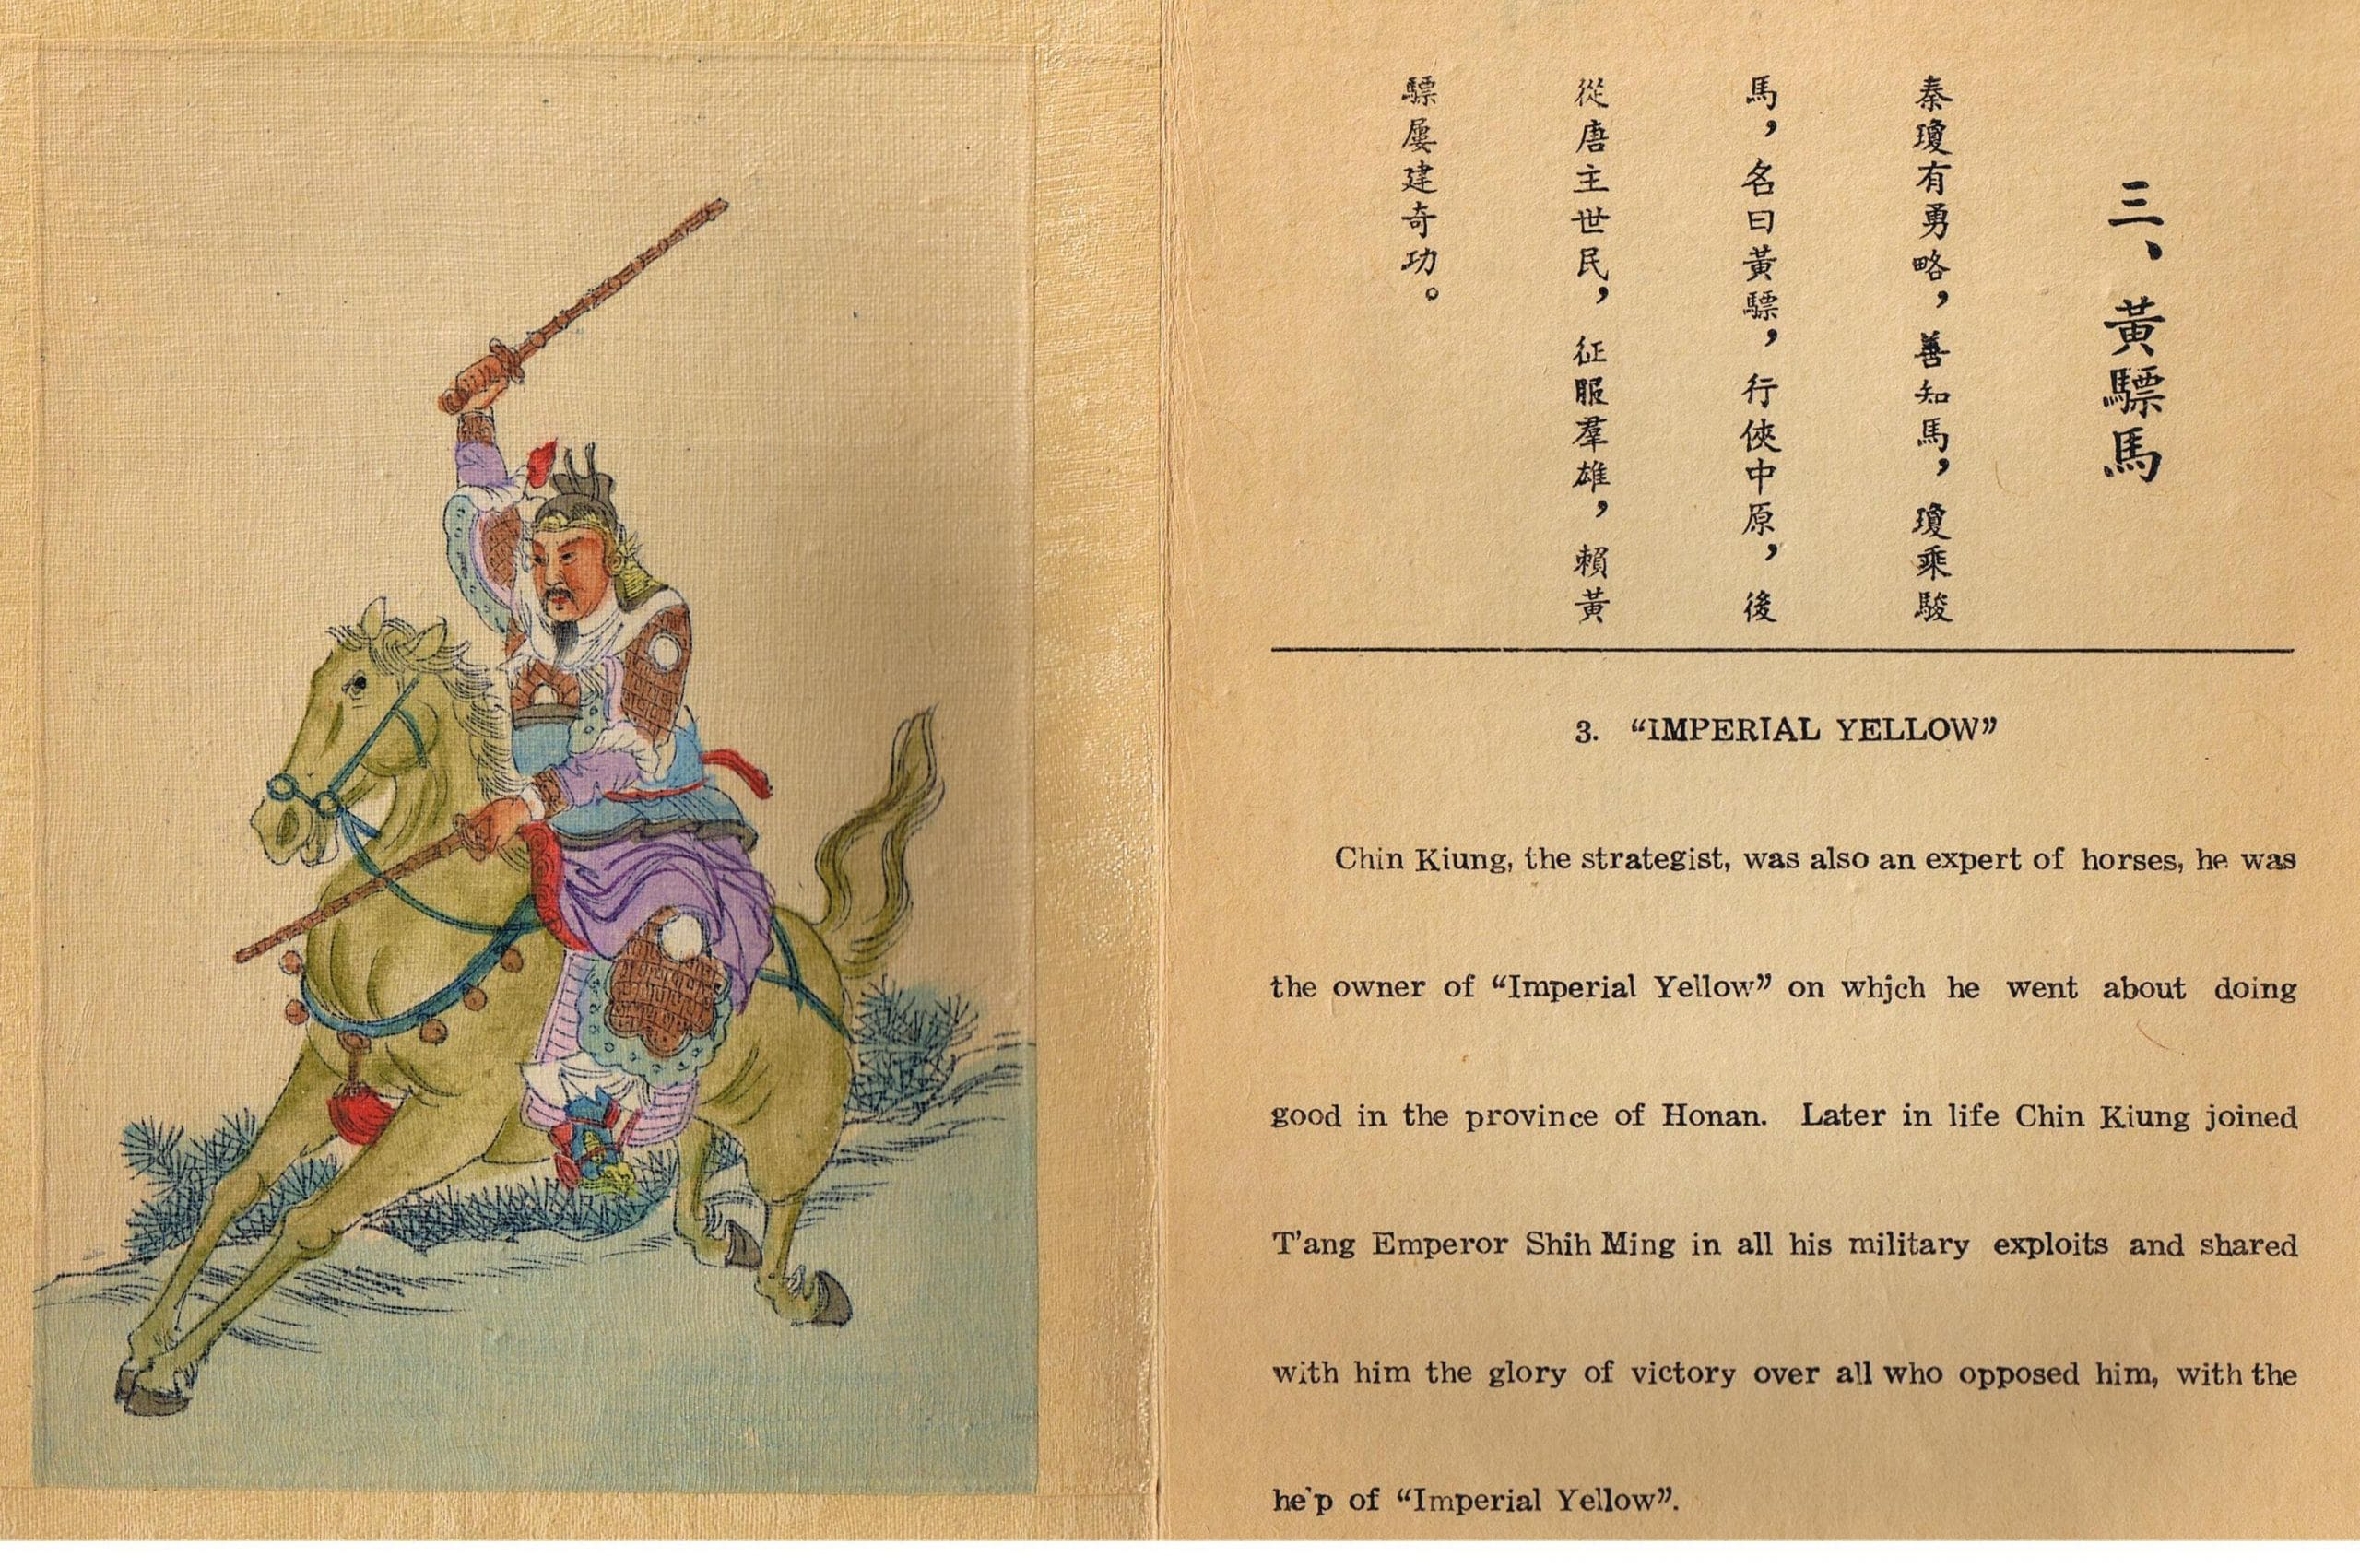 chinese medicine history essay Ayurveda, the traditional indian medicine (tim) and traditional chinese medicine (tcm) remain the most ancient yet living traditions there has been increased global interest in traditional medicine efforts to monitor and regulate herbal drugs and traditional medicine are underway china has been.